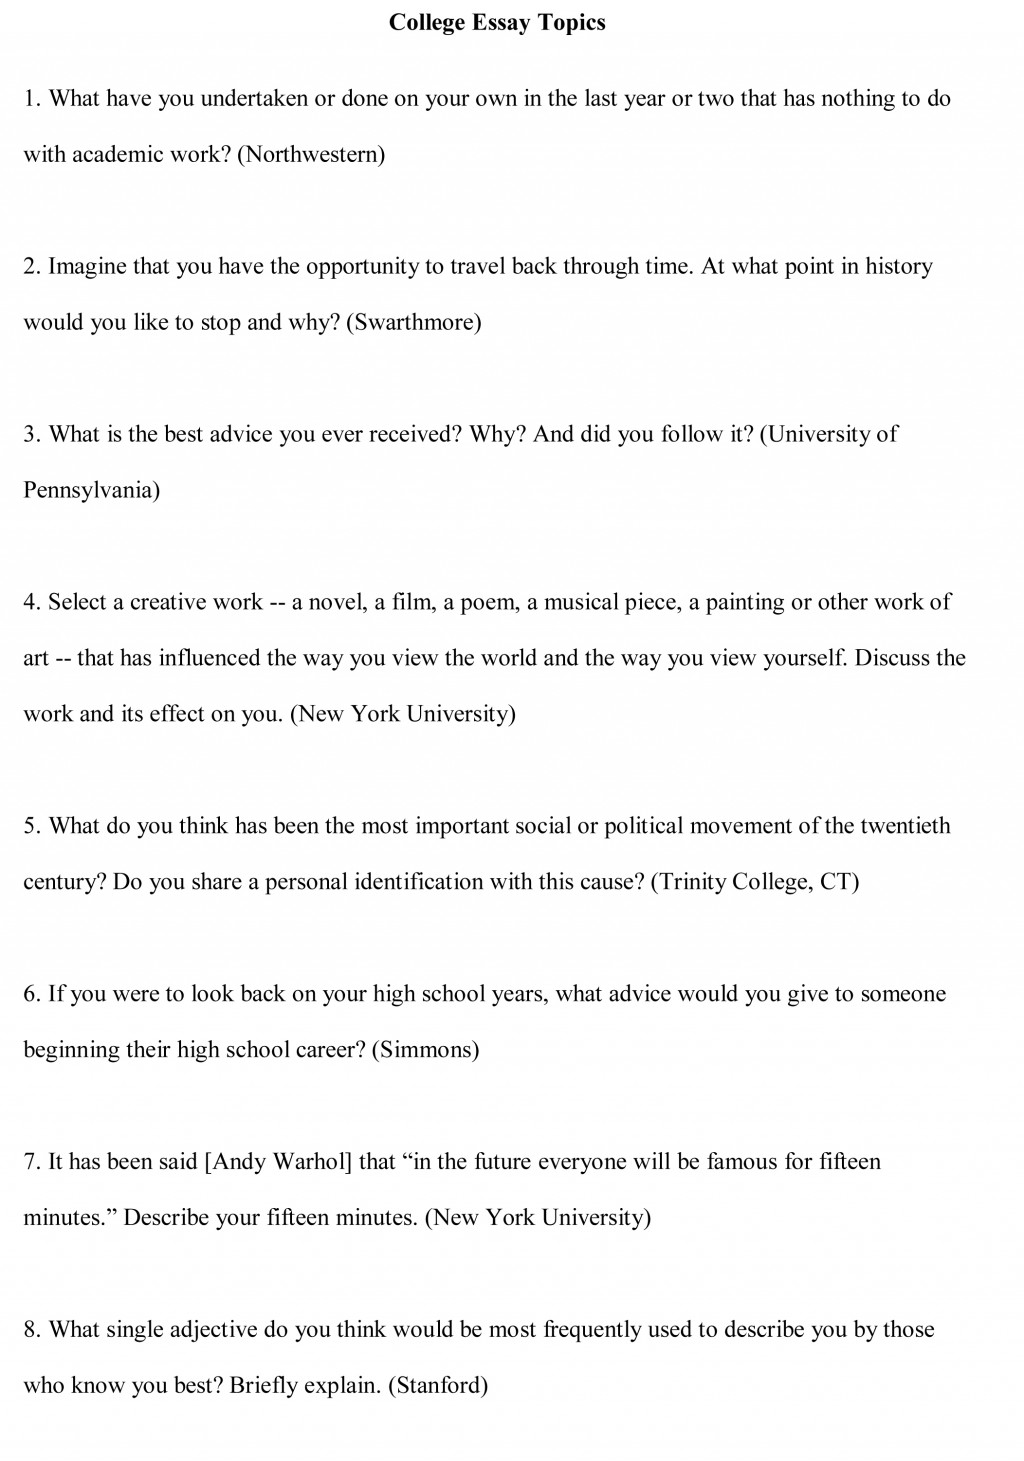 015 College Essay Topics Free Sample1 Automatic Writer Incredible Large